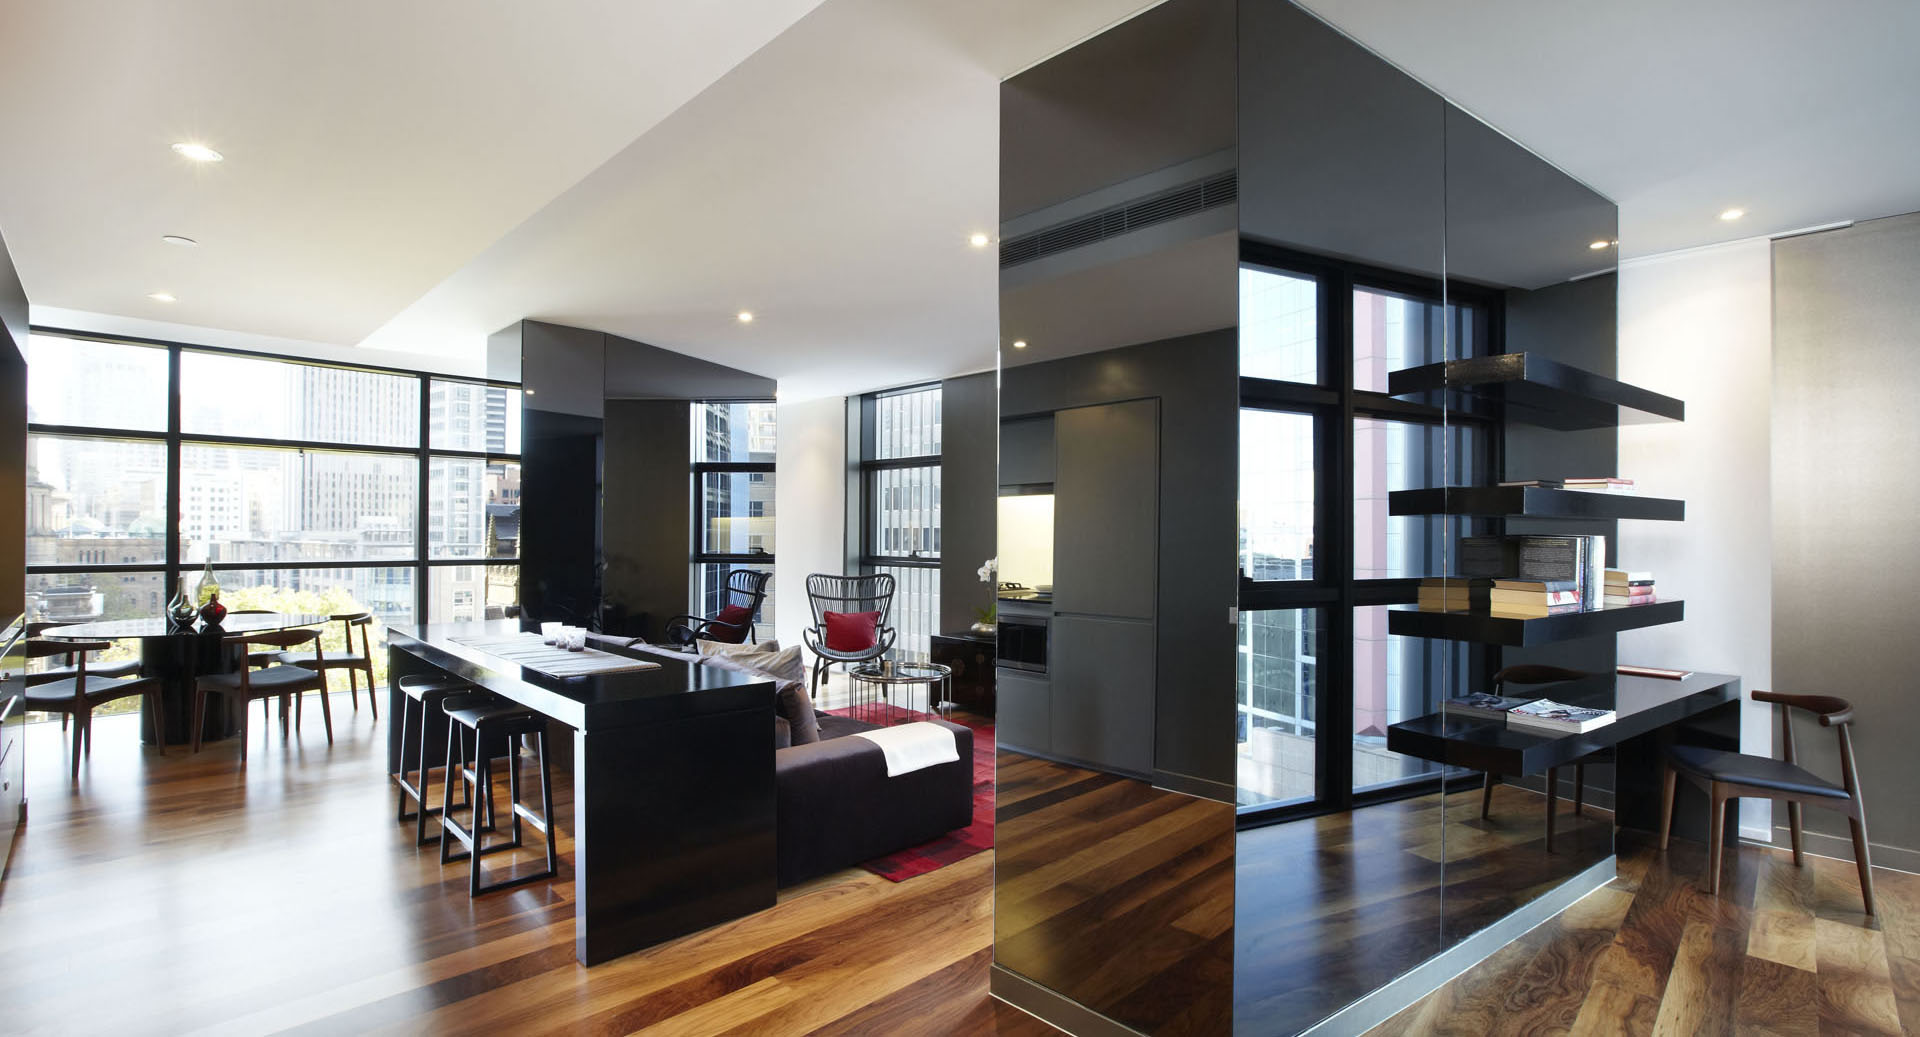 Contemporary apartment designs in sydney idesignarch for Interior design studio berlin